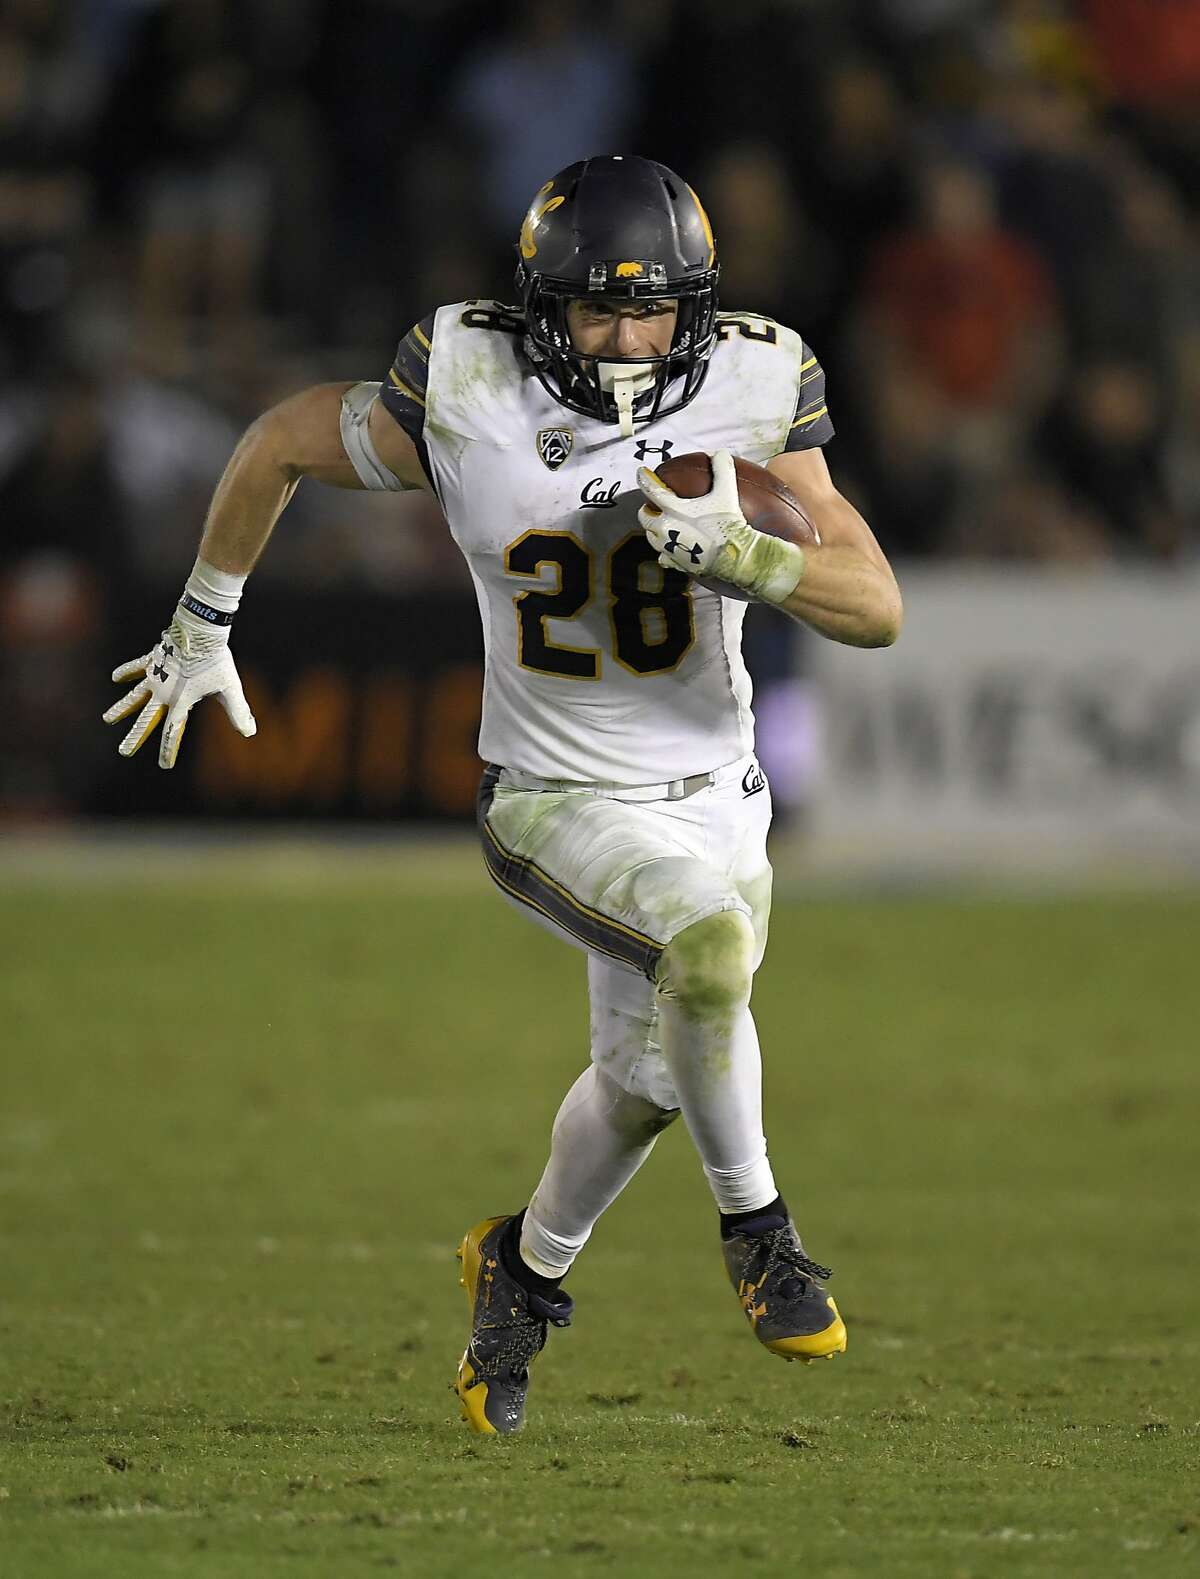 California running back Patrick Laird runs the ball during the second half of an NCAA college football game against UCLA, Friday, Nov. 24, 2017, in Los Angeles. UCLA won 30-27. (AP Photo/Mark J. Terrill)